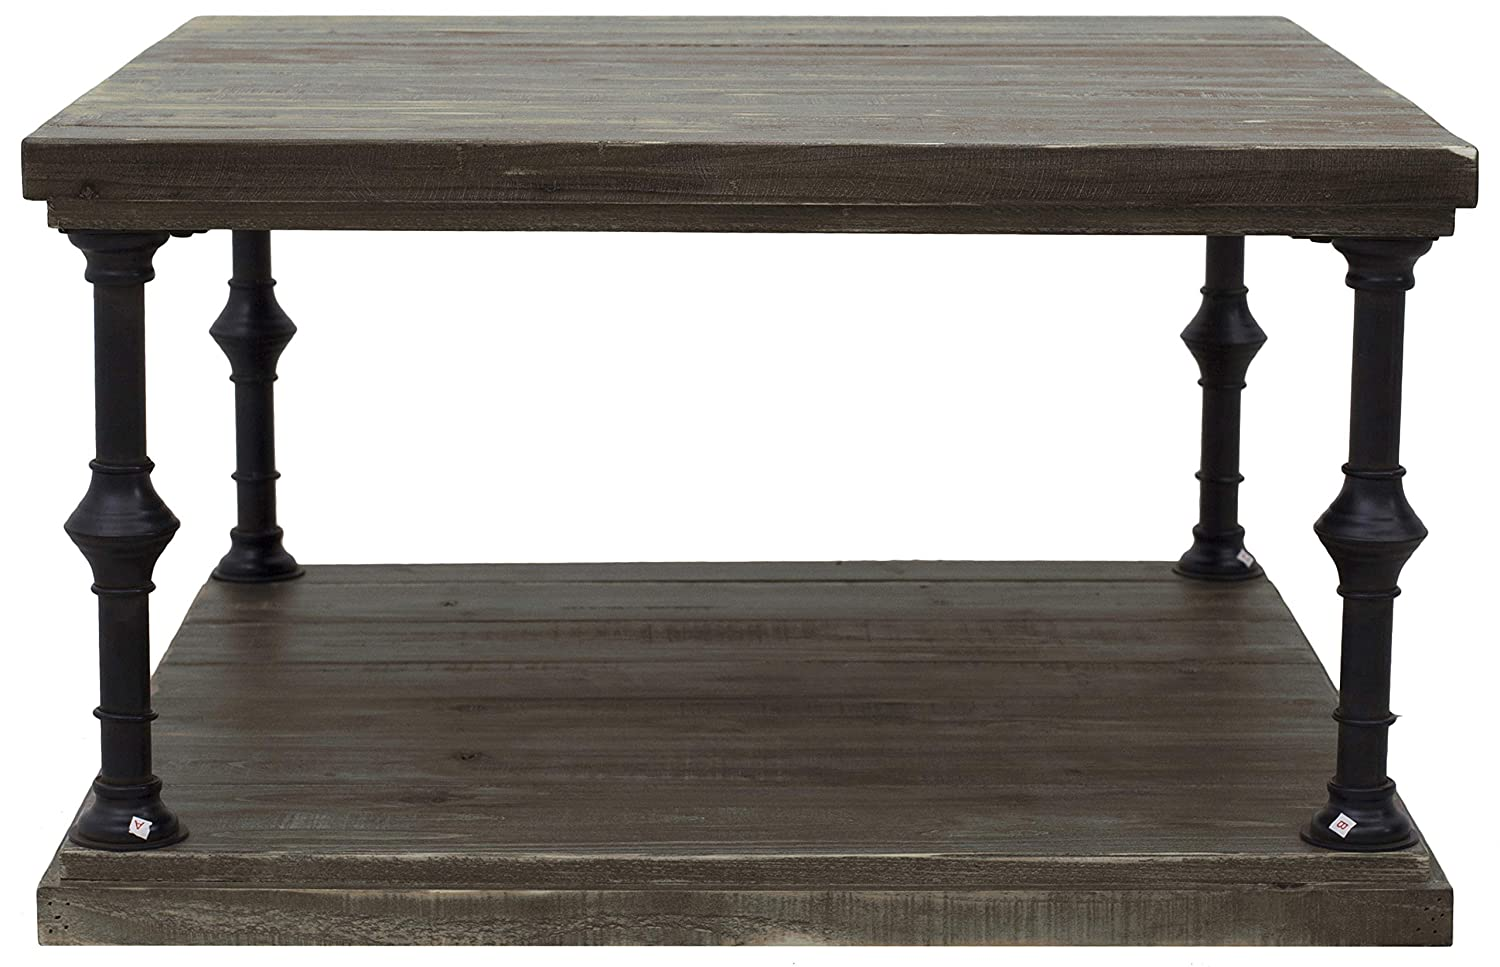 Distressed Wood 15.7H AMZ-B3-01B Ravenna Home Jessica Rustic Open Storage Large Side Table 15.7H